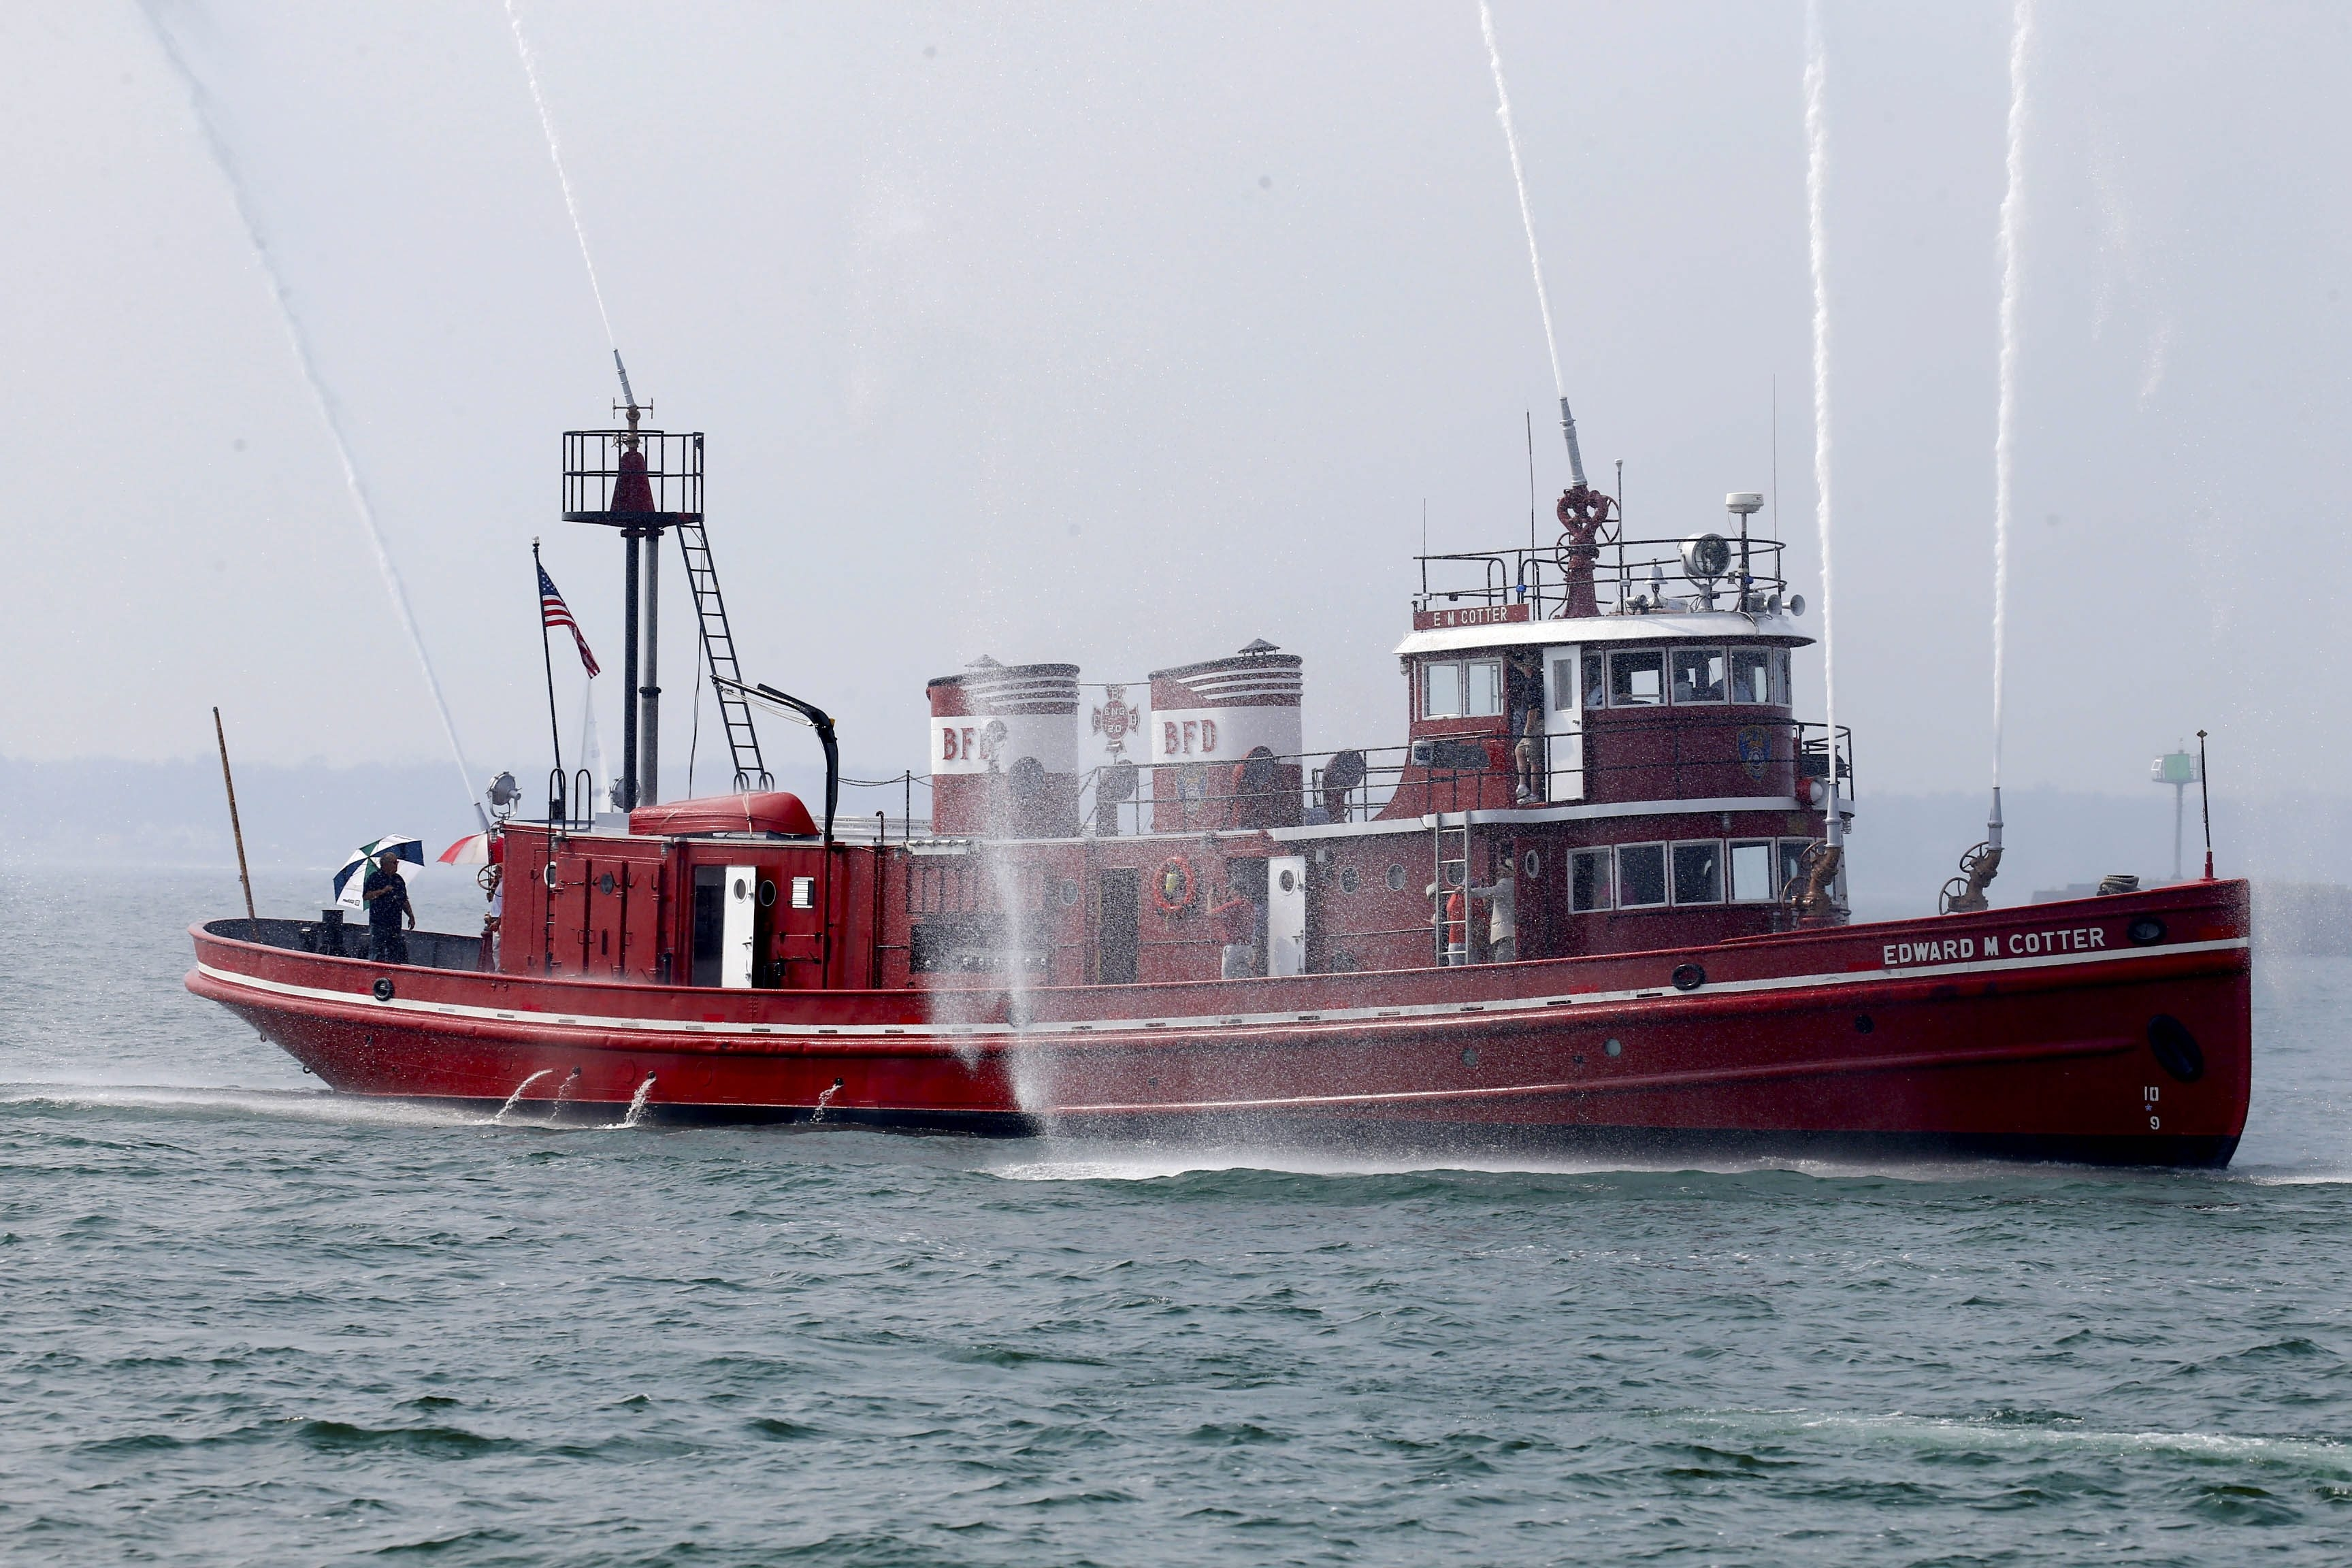 The Edward M. Cotter fire boat giving a ceremonial welcome to an arriving vessel Sept. 2, 2015. (Robert Kirkham/Buffalo News)